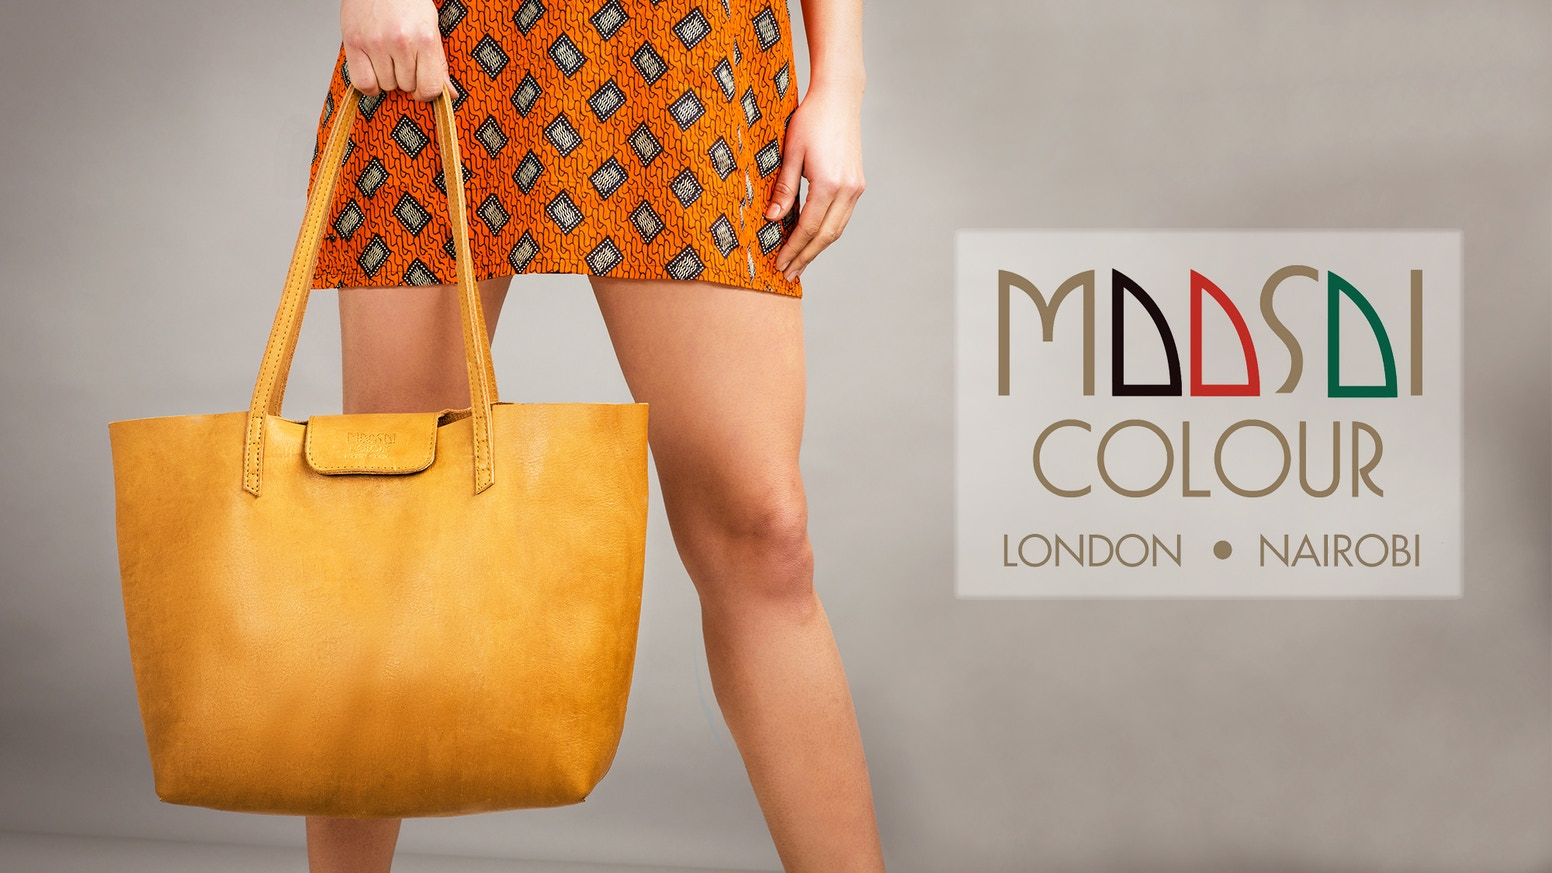 4181de14ac4d Expertly made luxury handbags - completely unique and customisable by you.  The perfect gift!